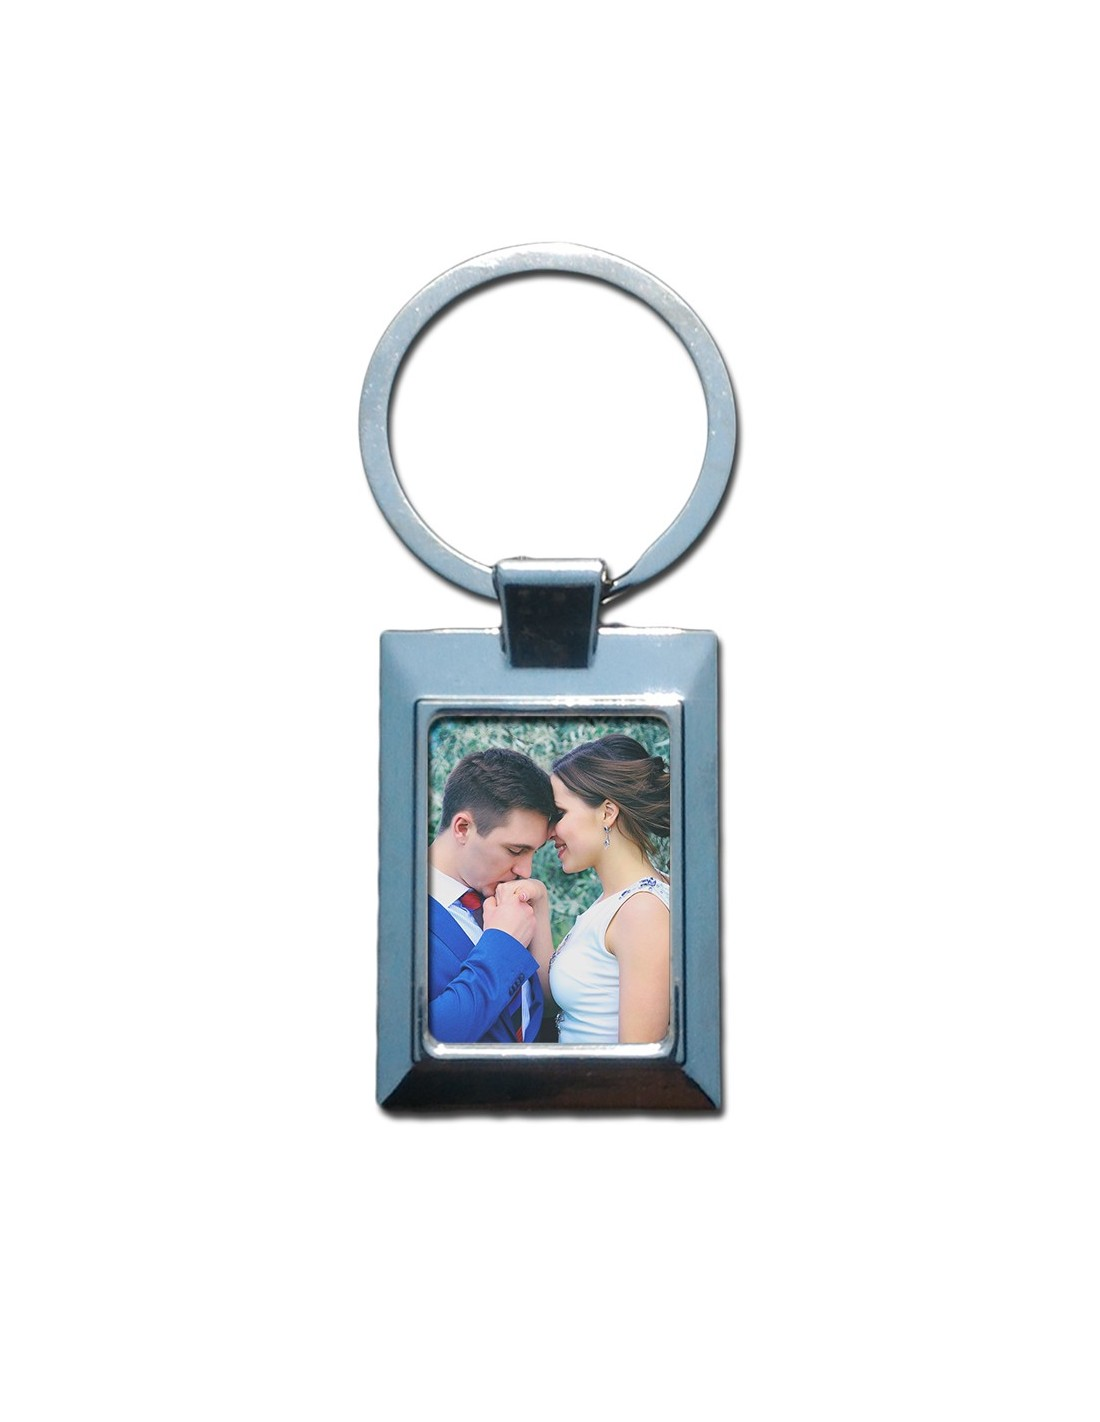 Buy Personalized Photo Key Chain Online in India at AccessoryBee.com 8b941d6b81b9